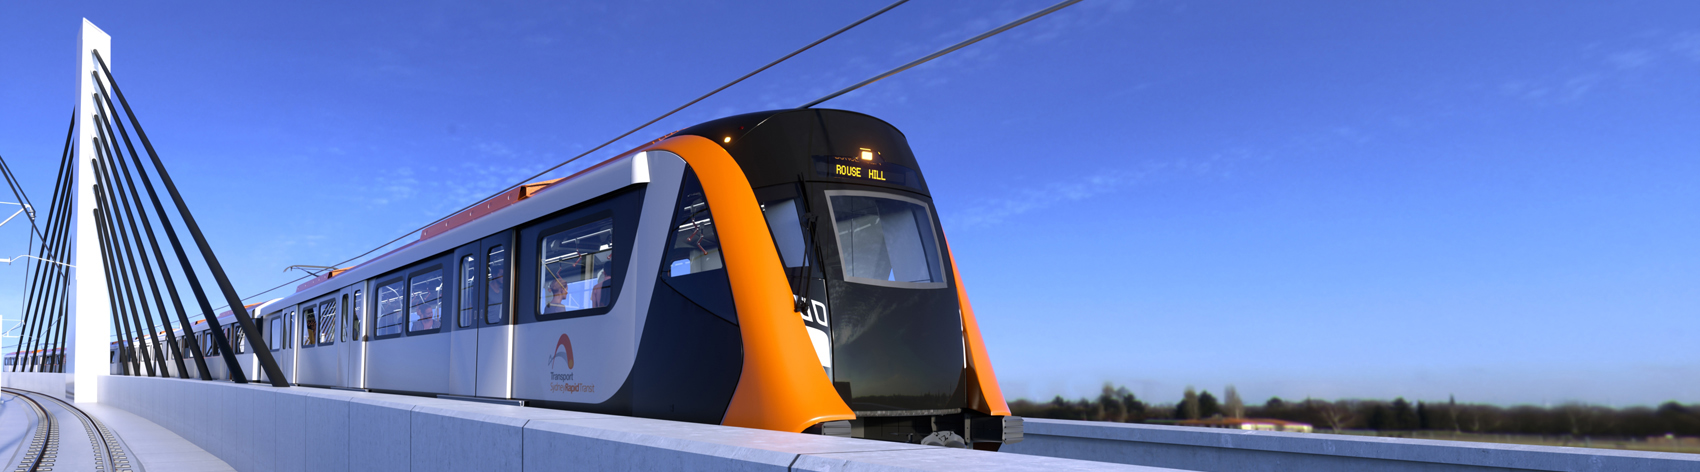 Alstom : un train interurbain automatique pour l'Australie